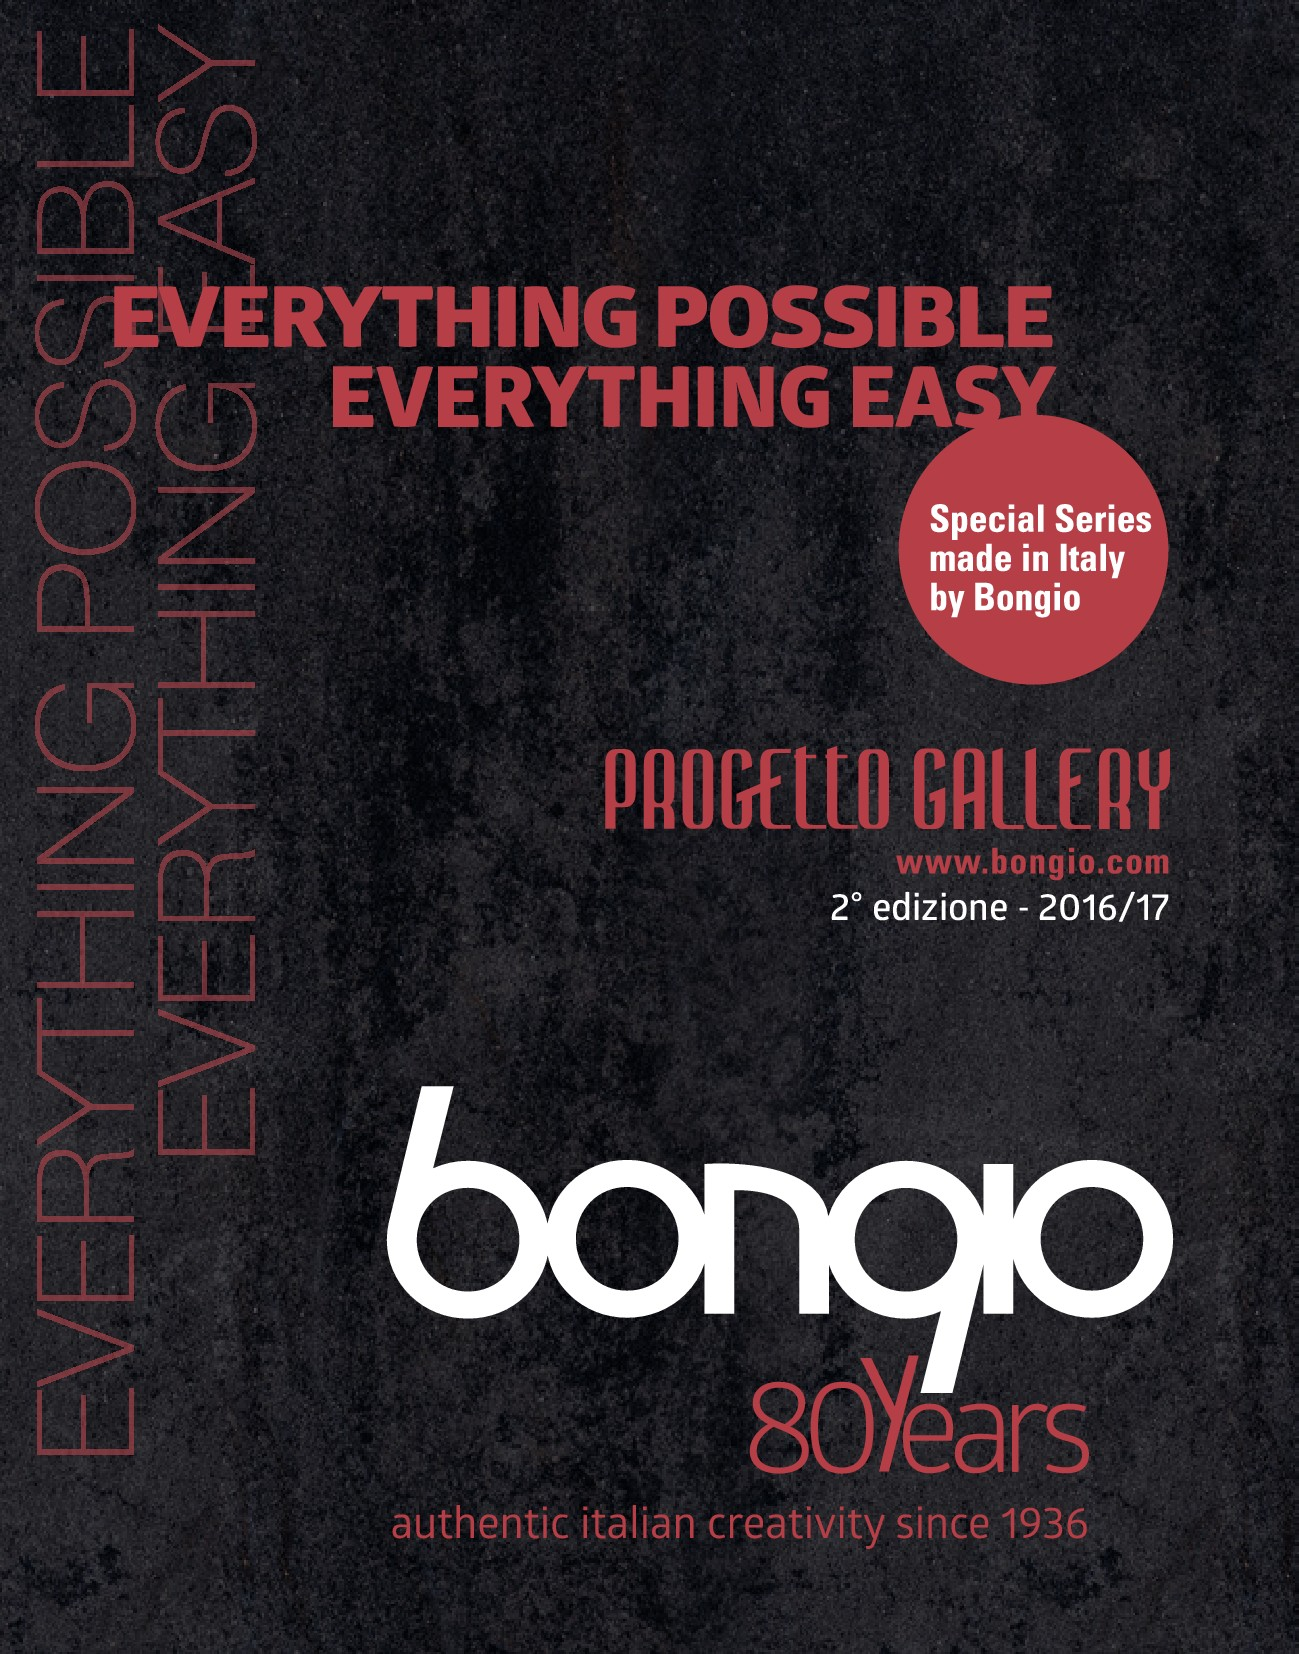 Bongio Products Catalogue